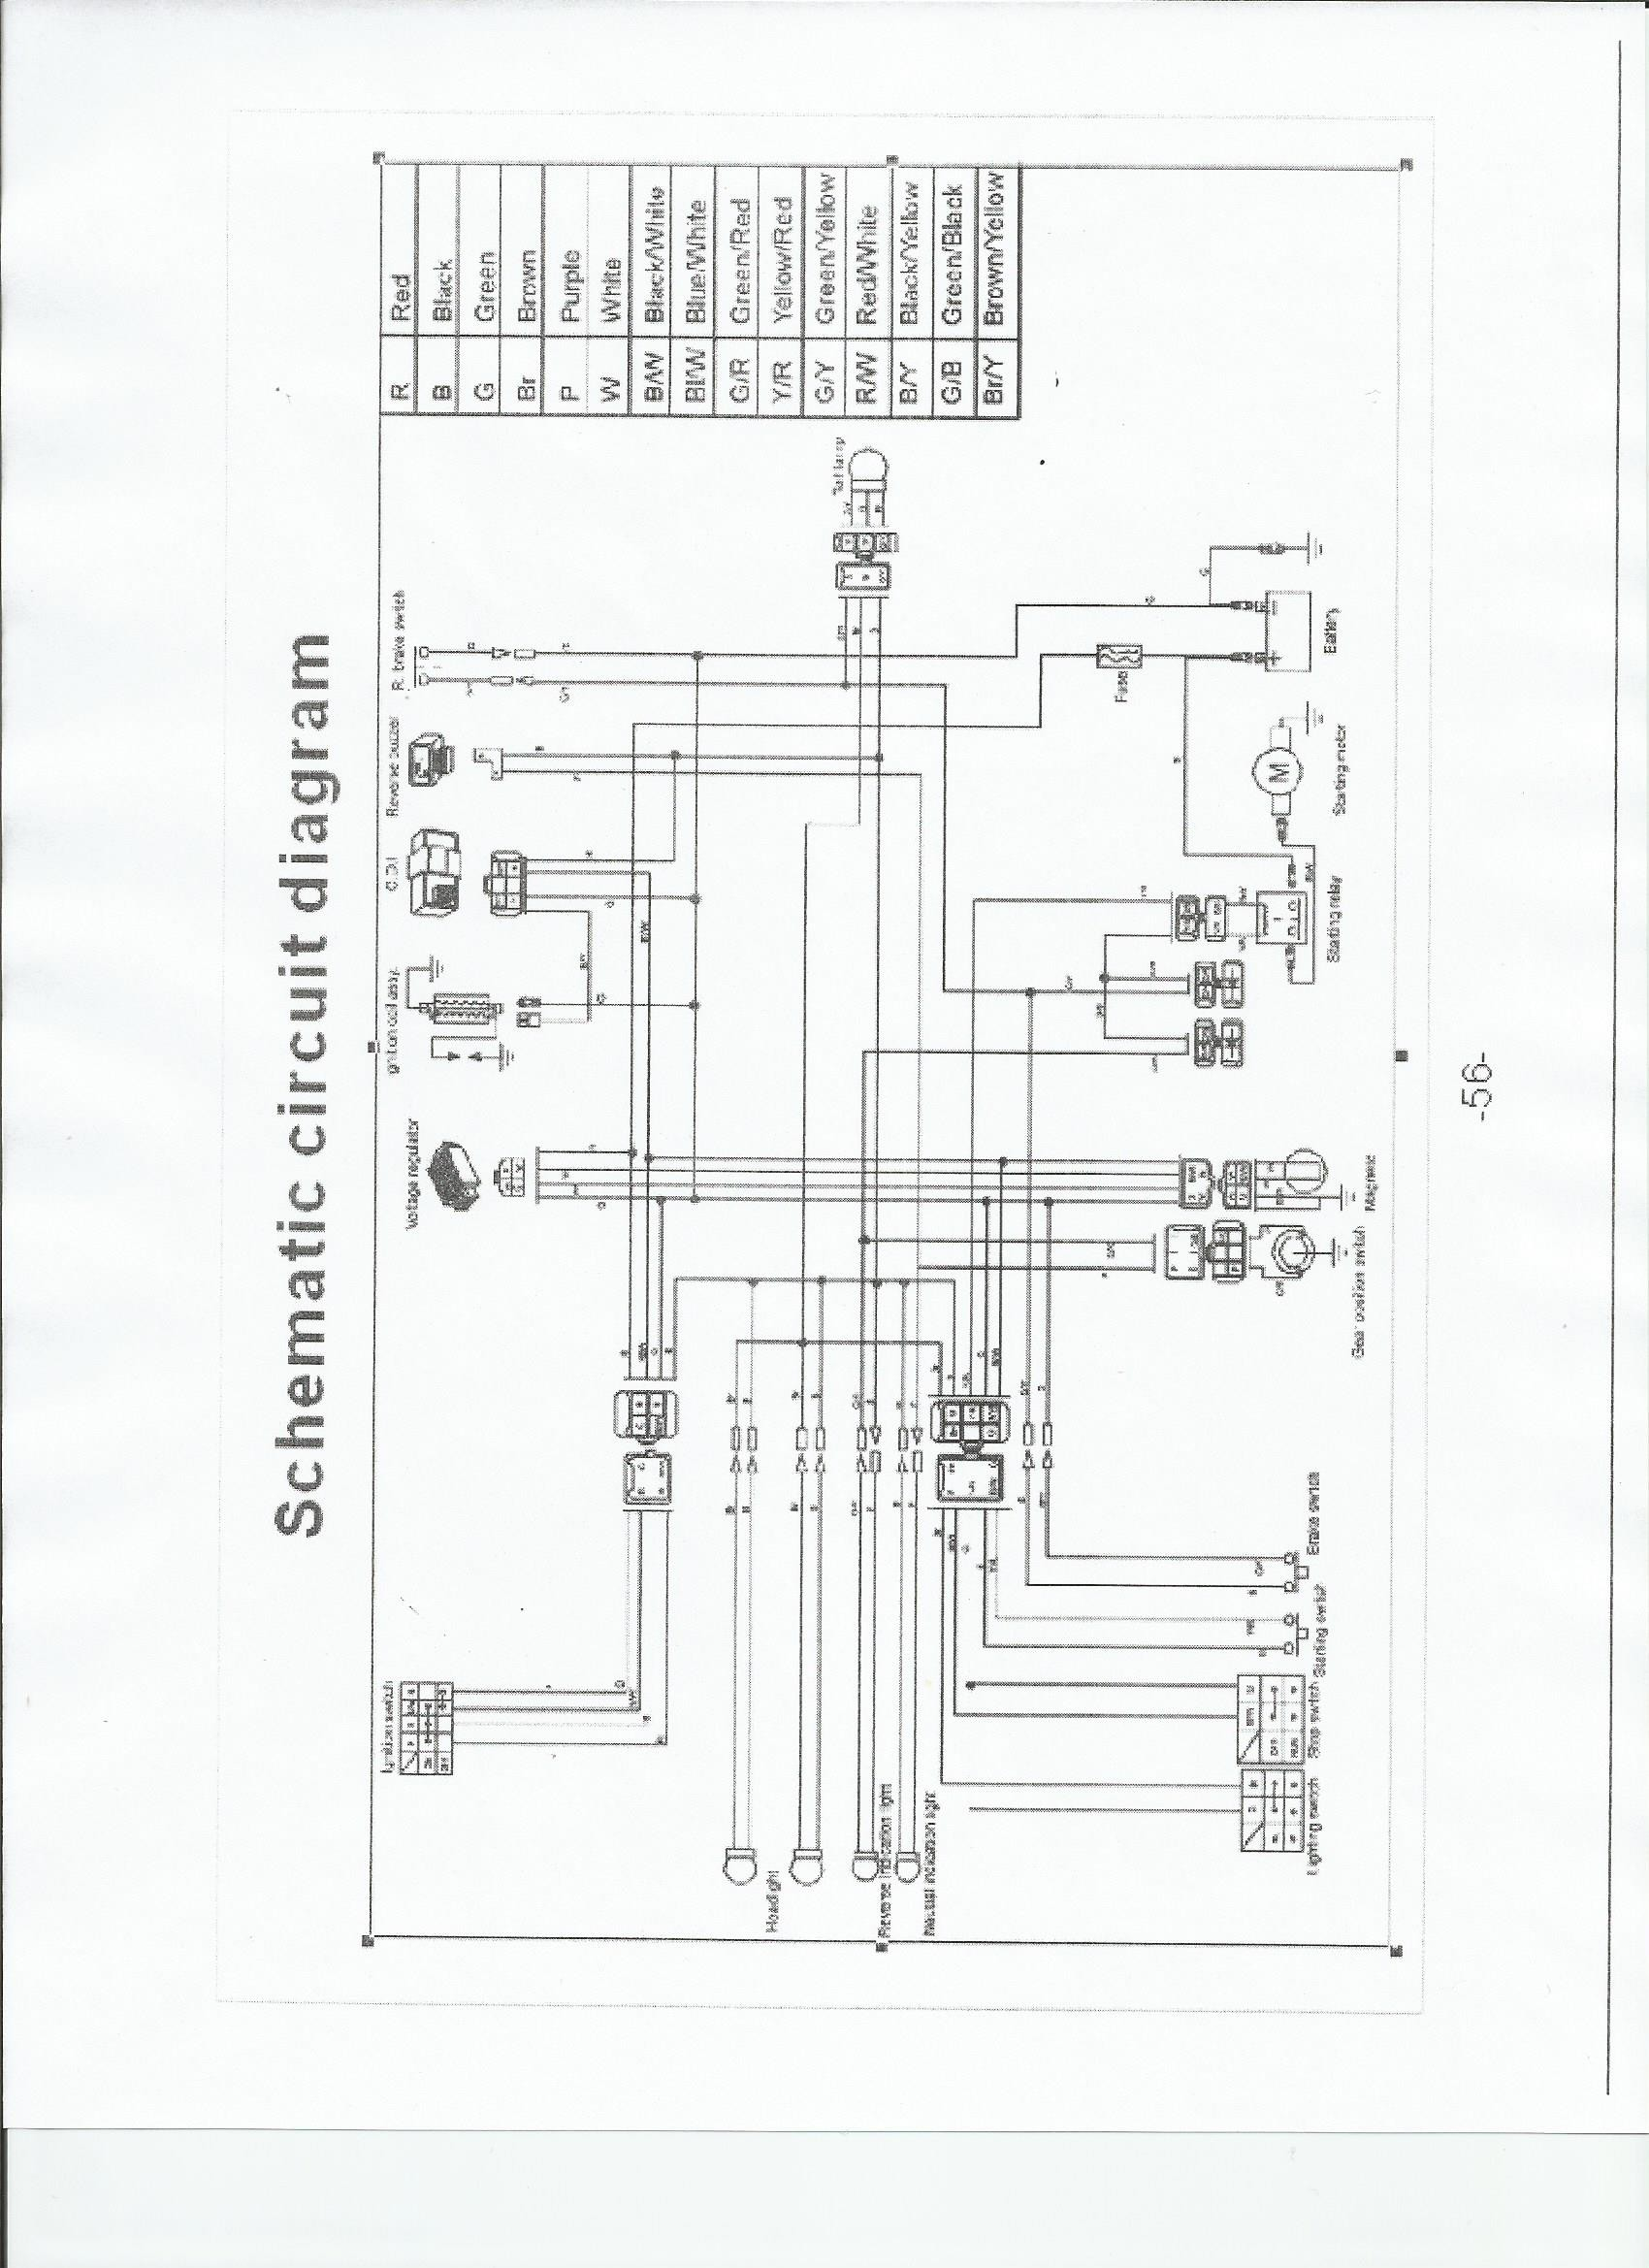 Taotao 50 Scooter Cdi Wiring Diagram